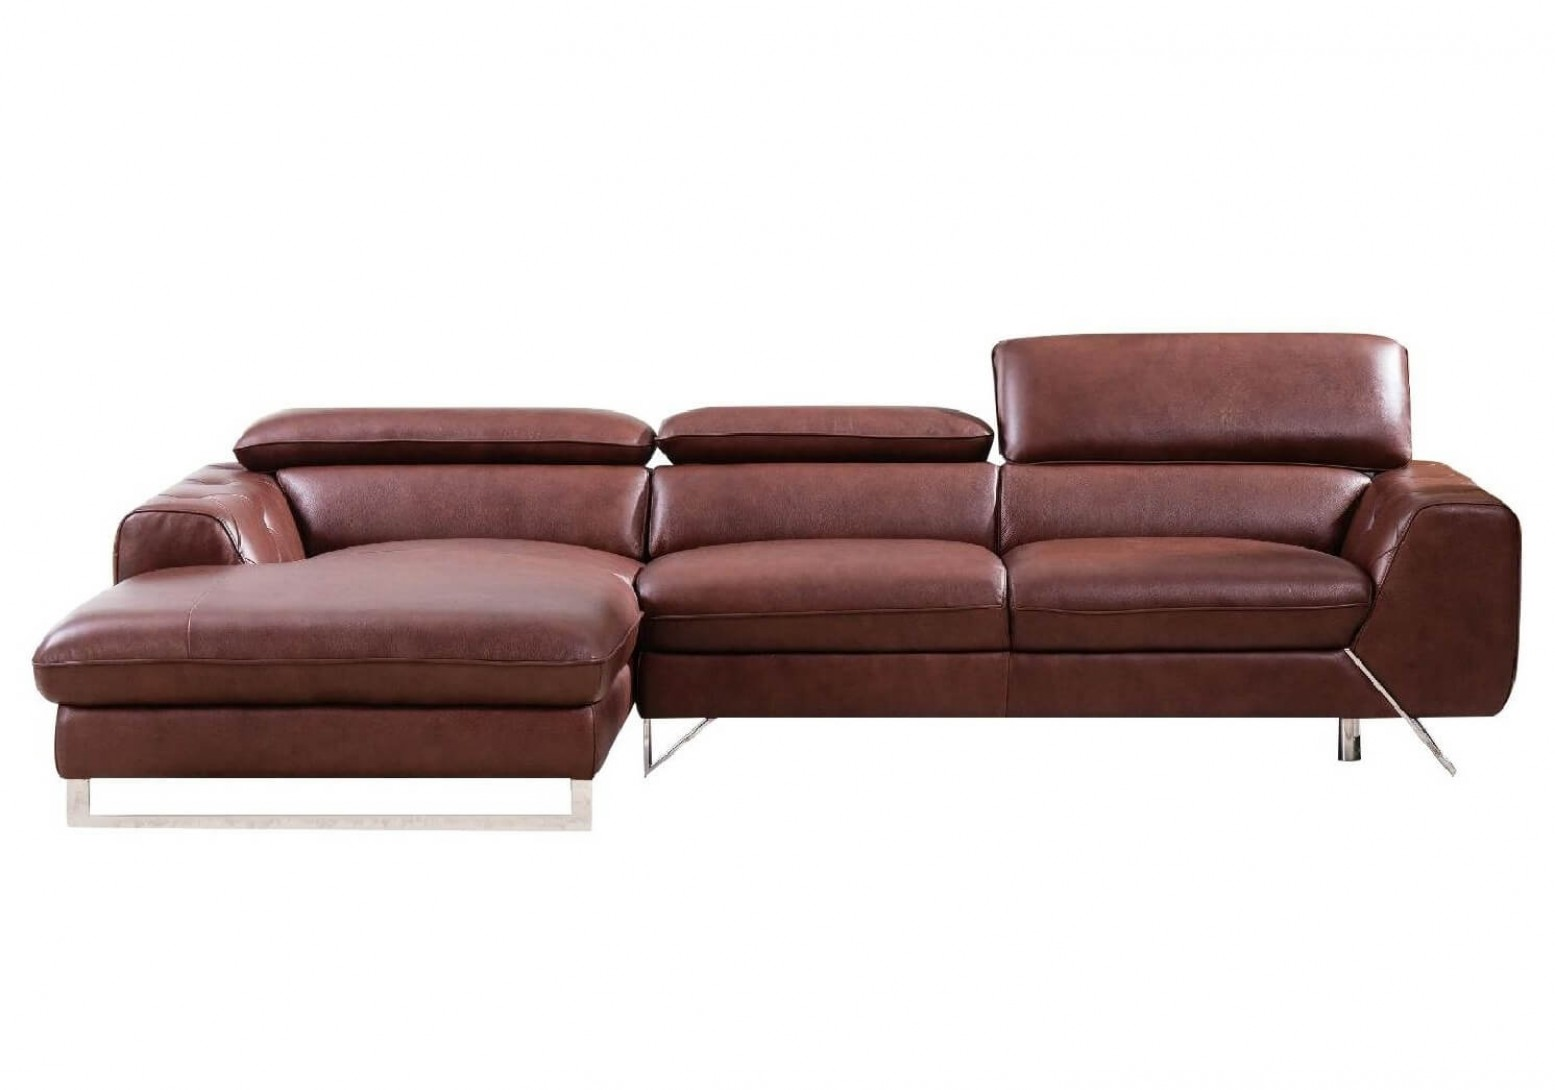 S98 Sectional Sofa, Left Arm Chaise Facing, Brown by ...